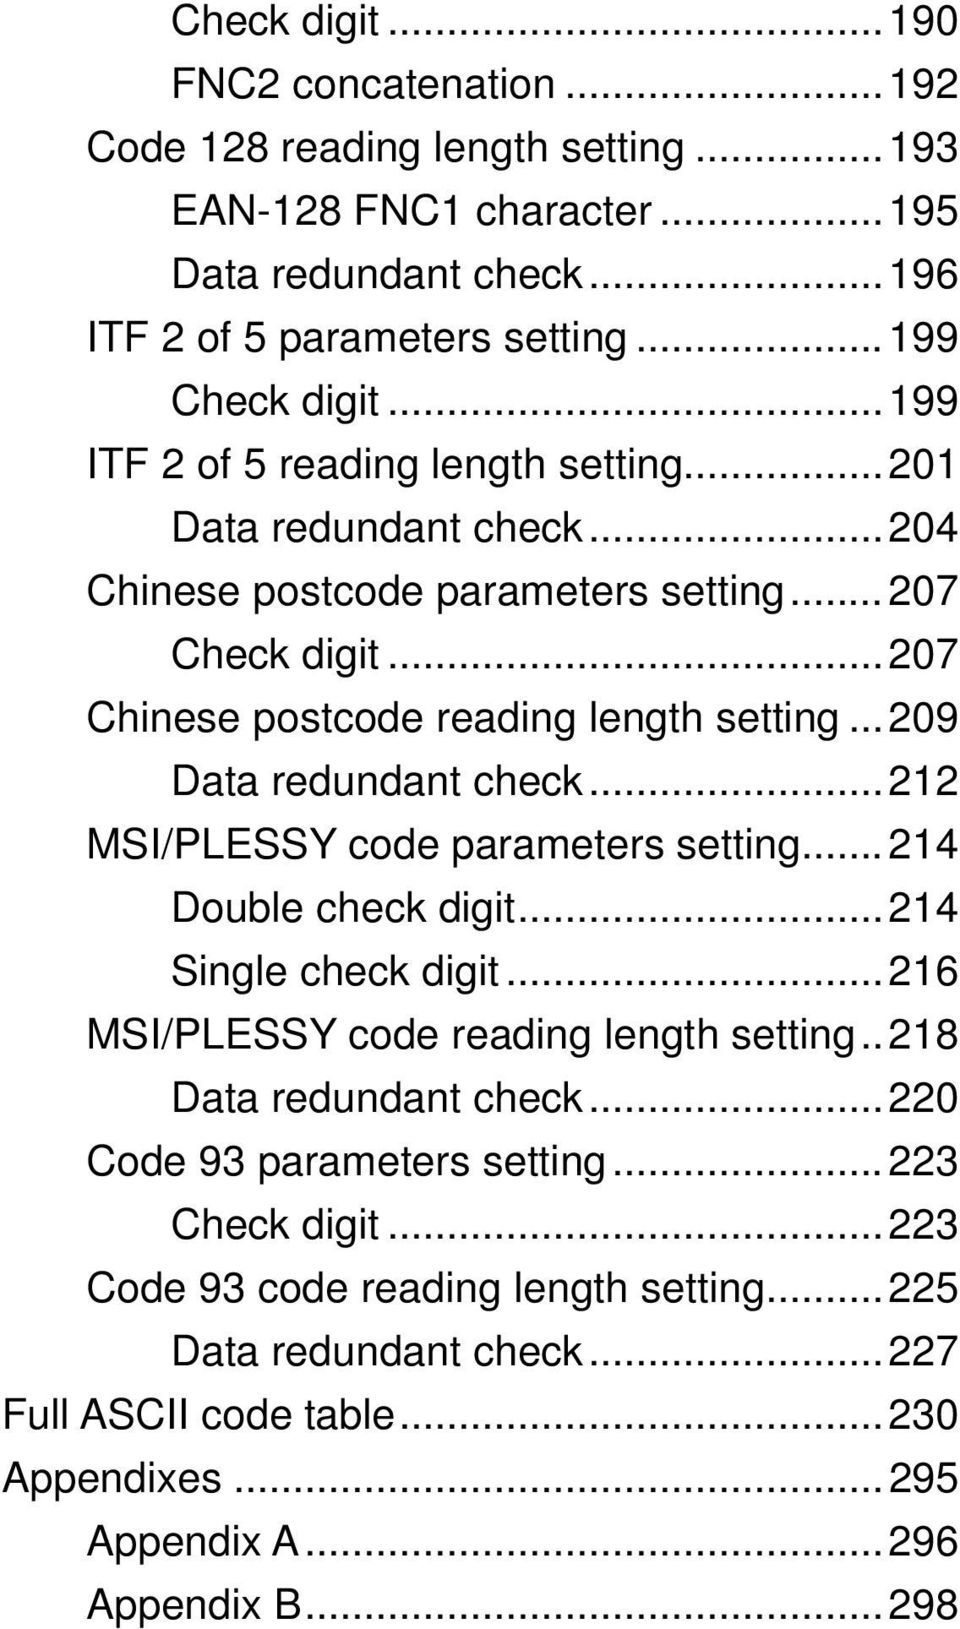 ..209 Data redundant check...212 MSI/PLESSY code parameters setting...214 Double check digit...214 Single check digit...216 MSI/PLESSY code reading length setting..218 Data redundant check.